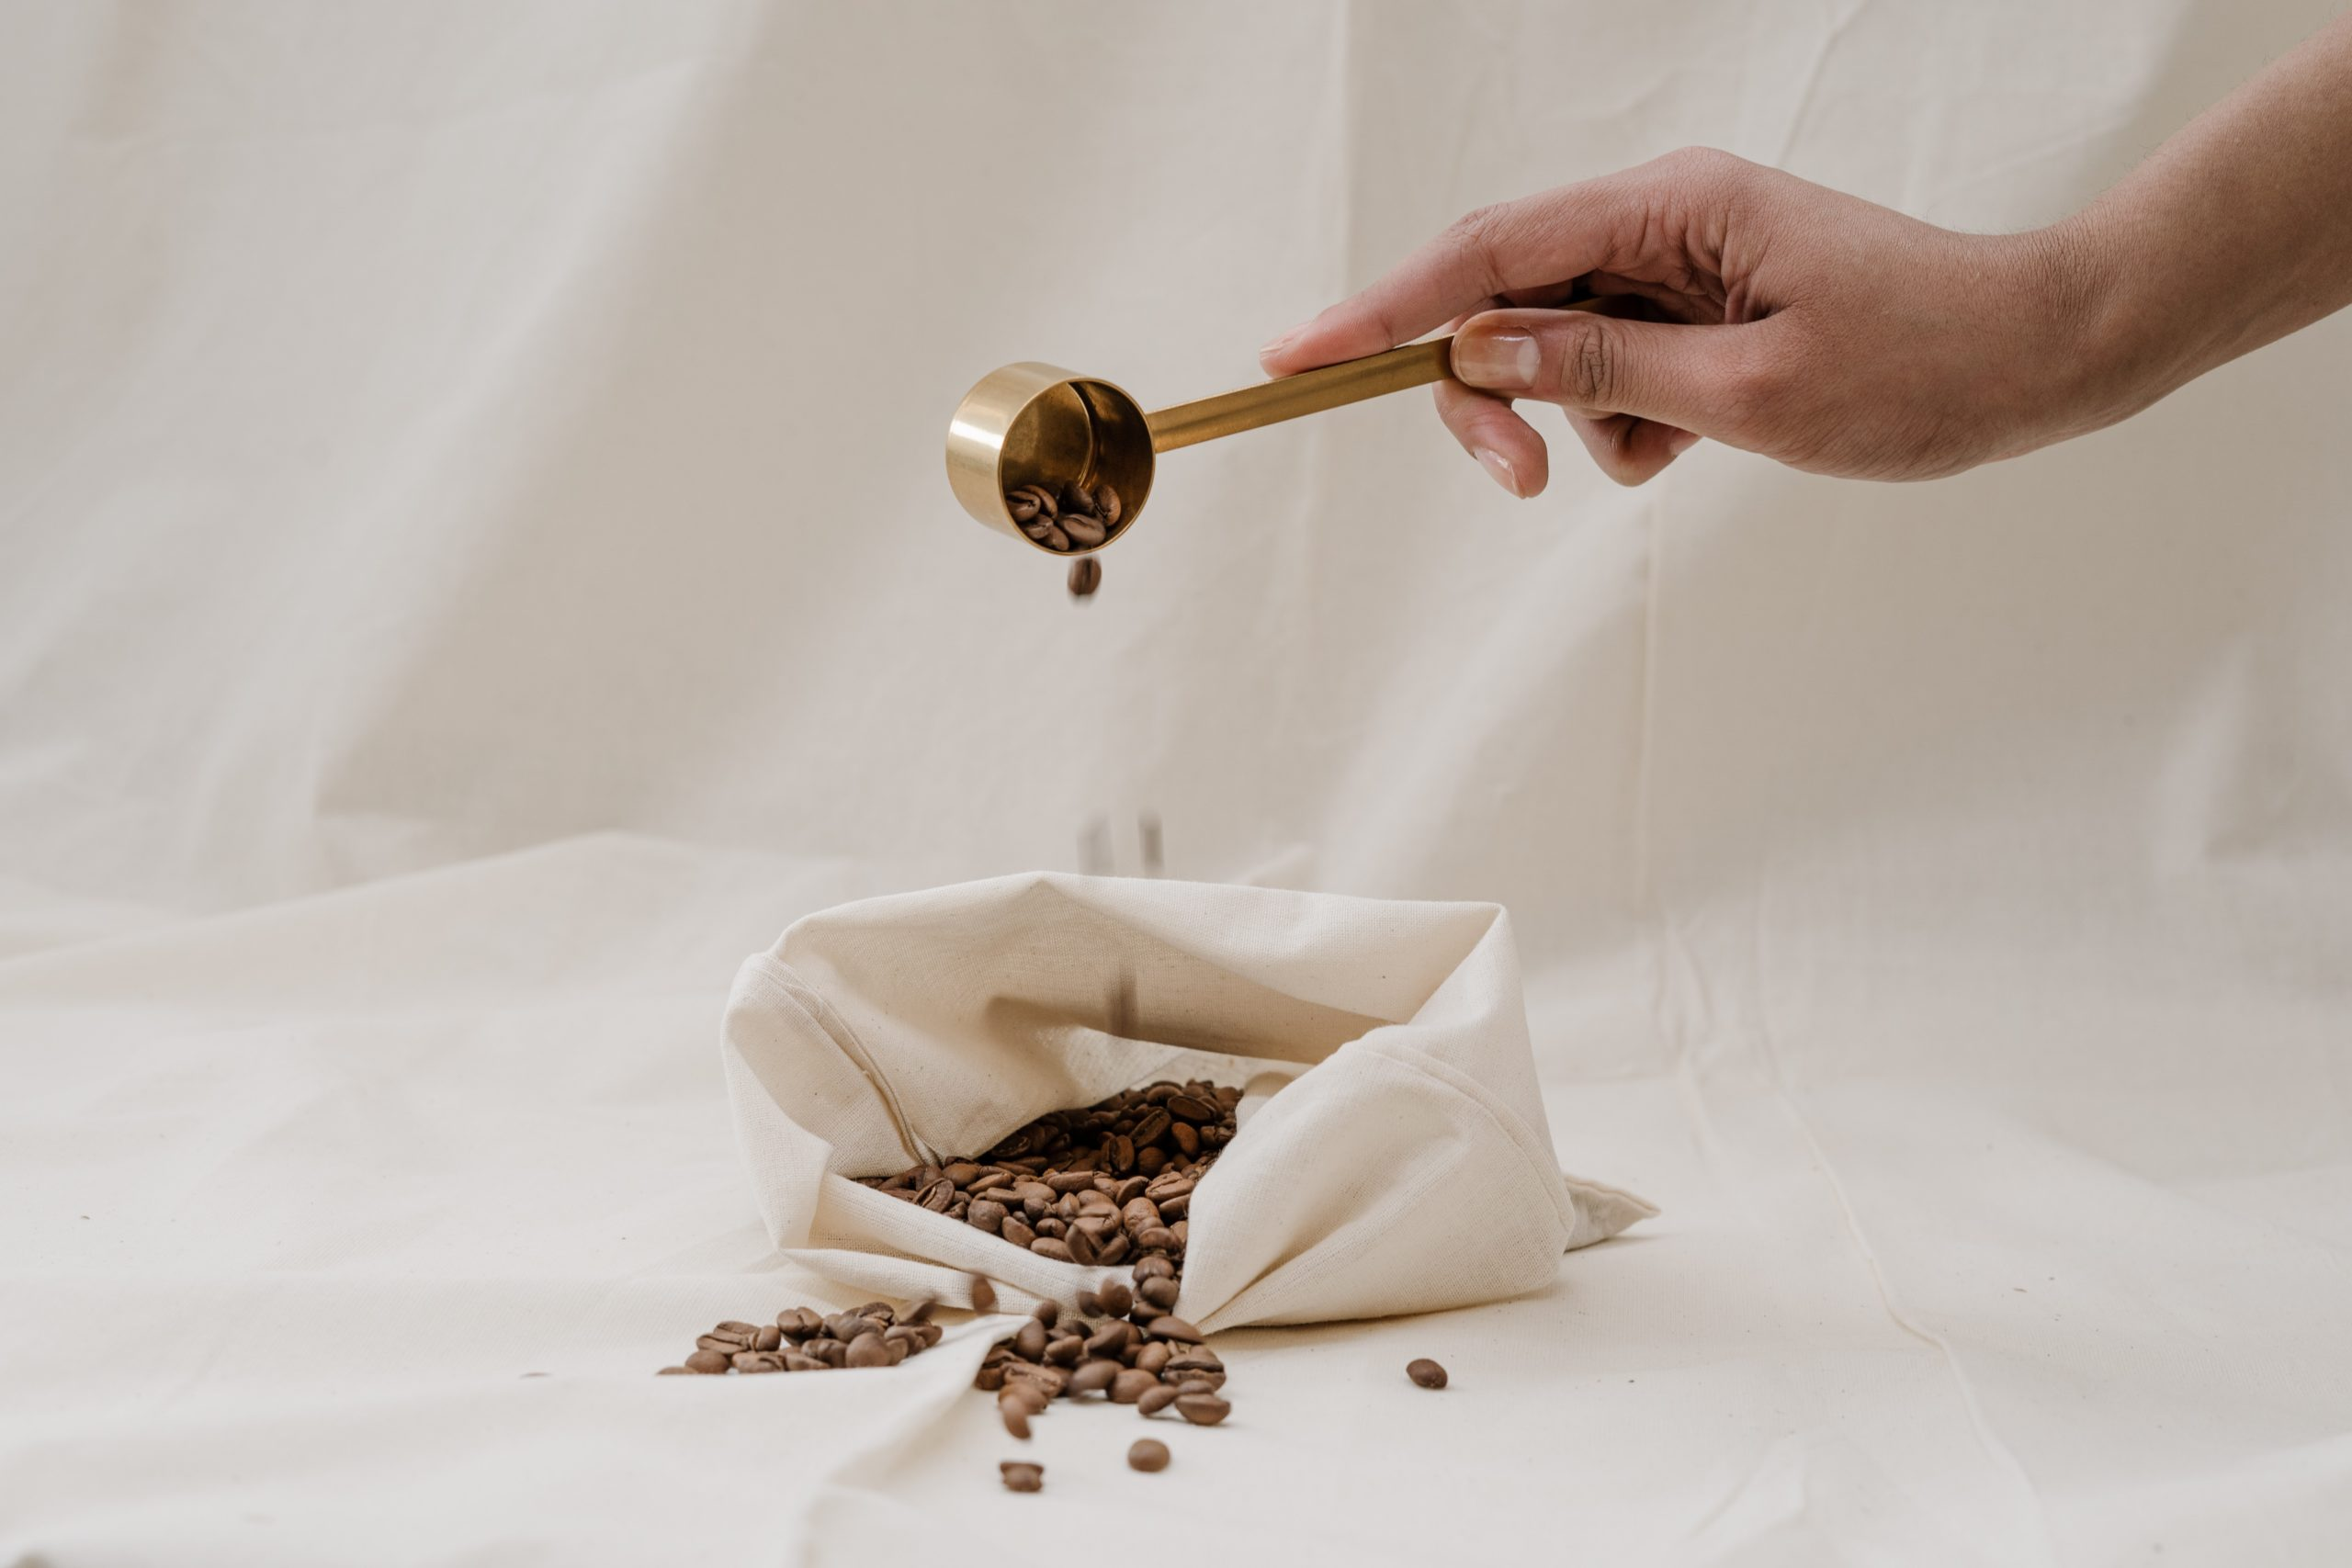 a person pouring a scoop of coffee beans into a bag